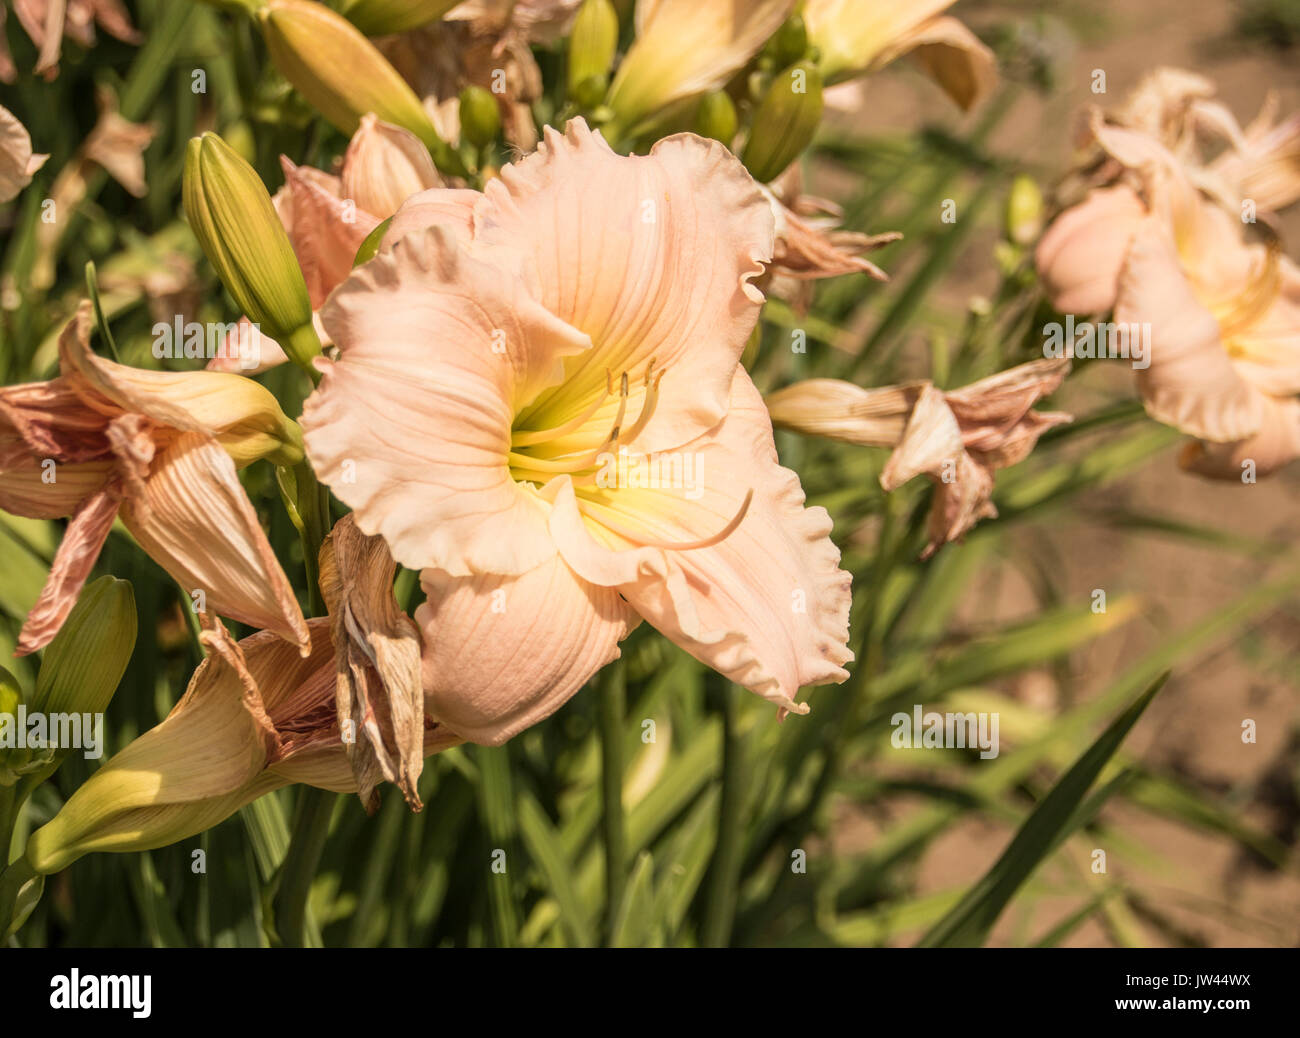 The Flower on a peach Lily photographed up close, with blurred out background Stock Photo